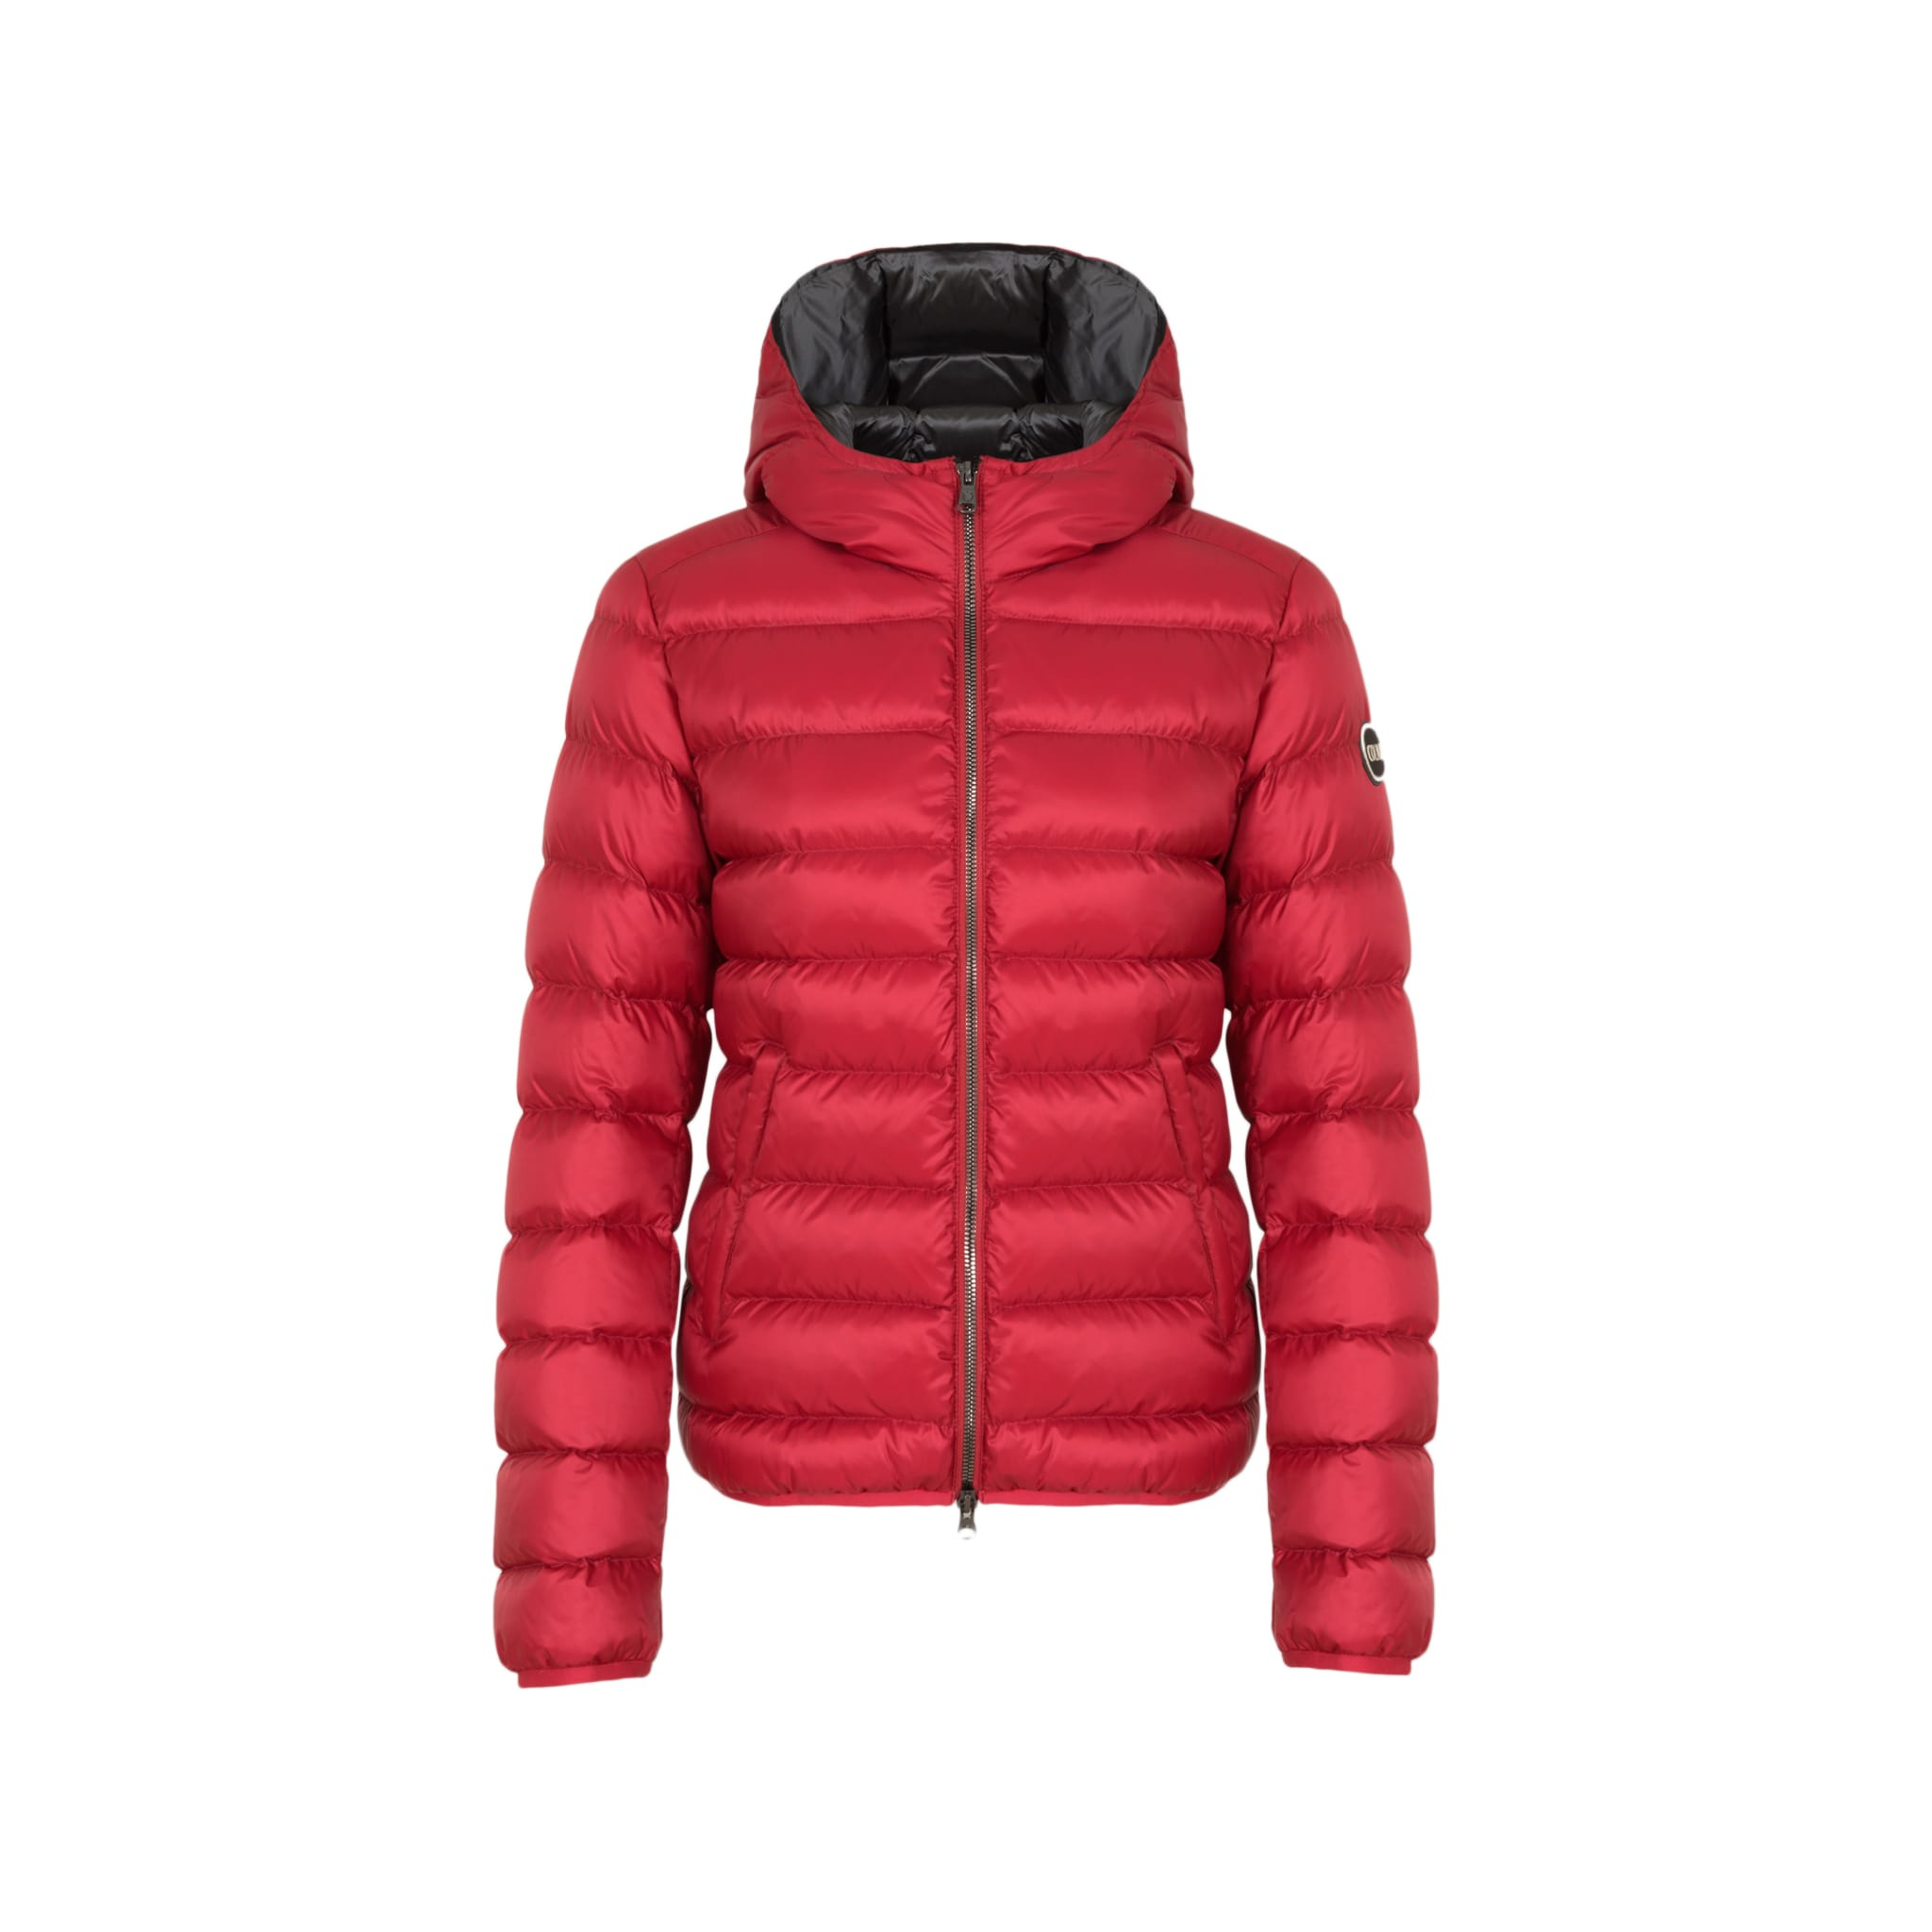 Originals Winter Down Jacket W